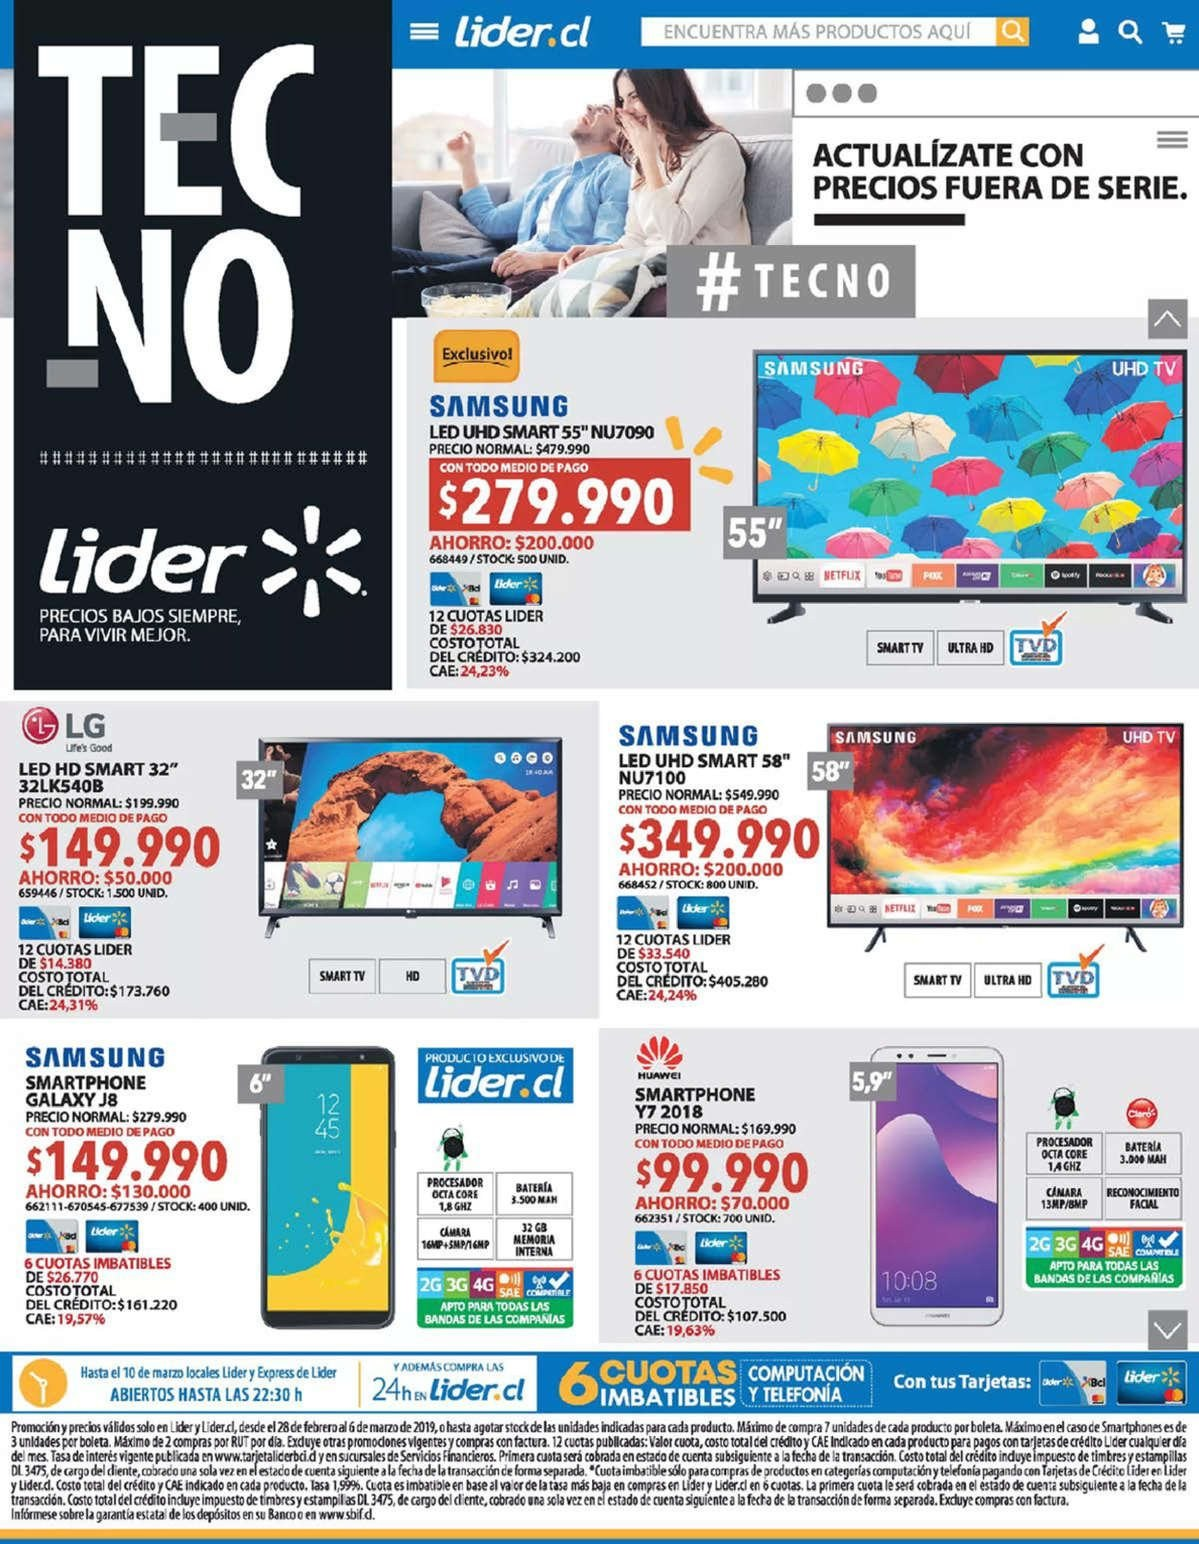 Folleto actual Lider - 28.2.2019 - 6.3.2019 - Ventas - led, galaxy, hp, lg, smartphone, ultra hd, samsung, base. Página 1.